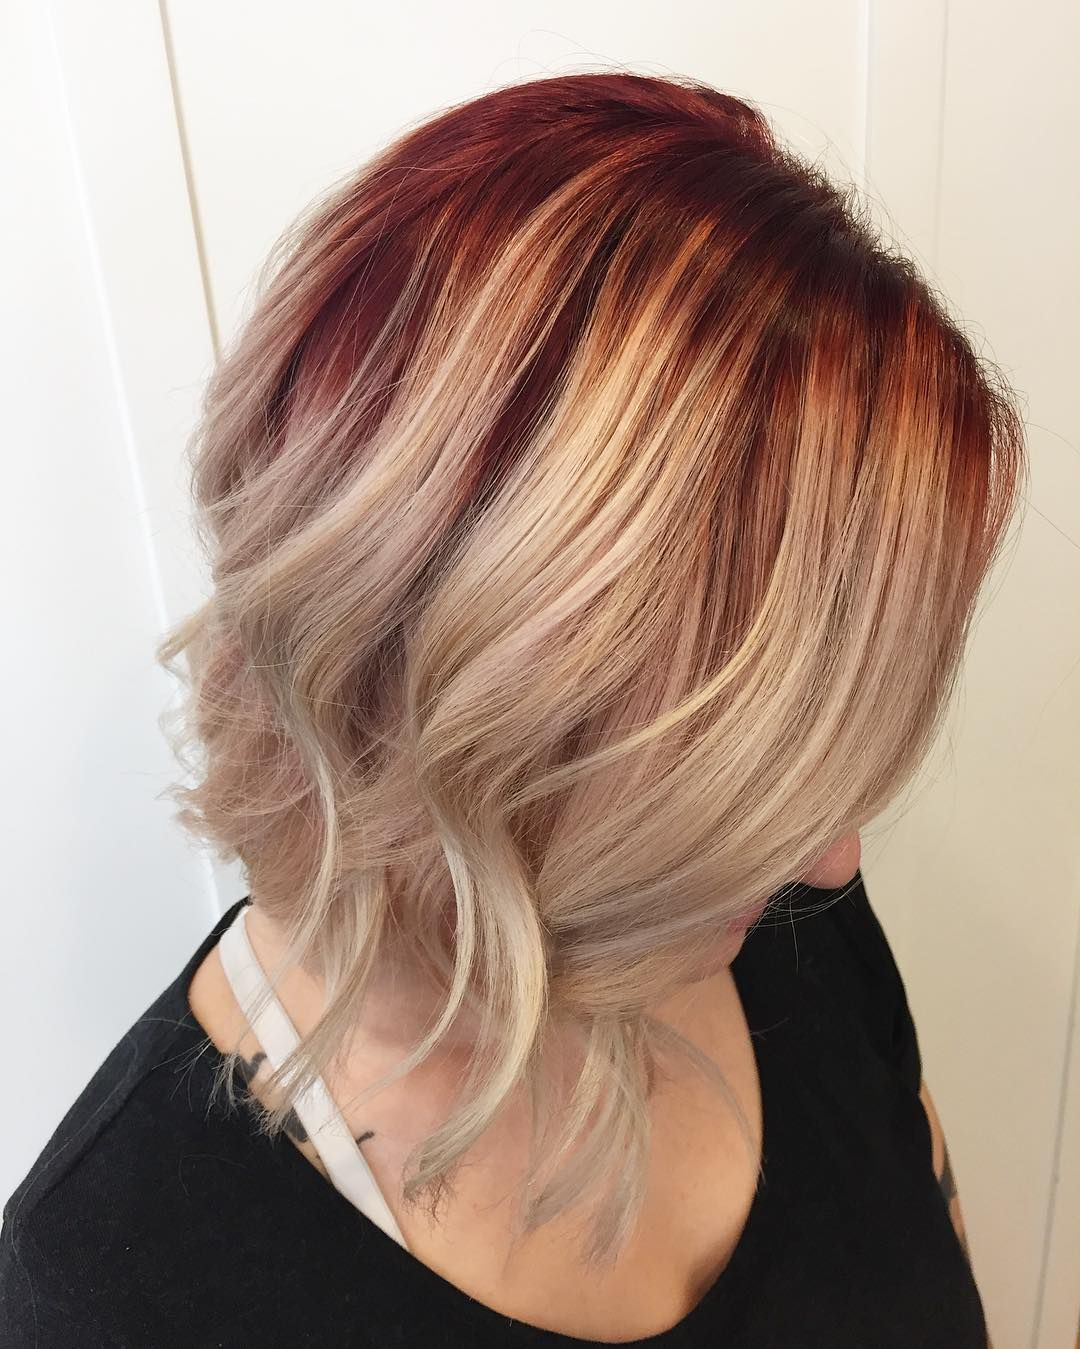 45 Inspirational Red And Blonde Hair Trend Ideas For 2017 Blonde Hair With Roots Red Roots Blonde Hair Red Blonde Hair